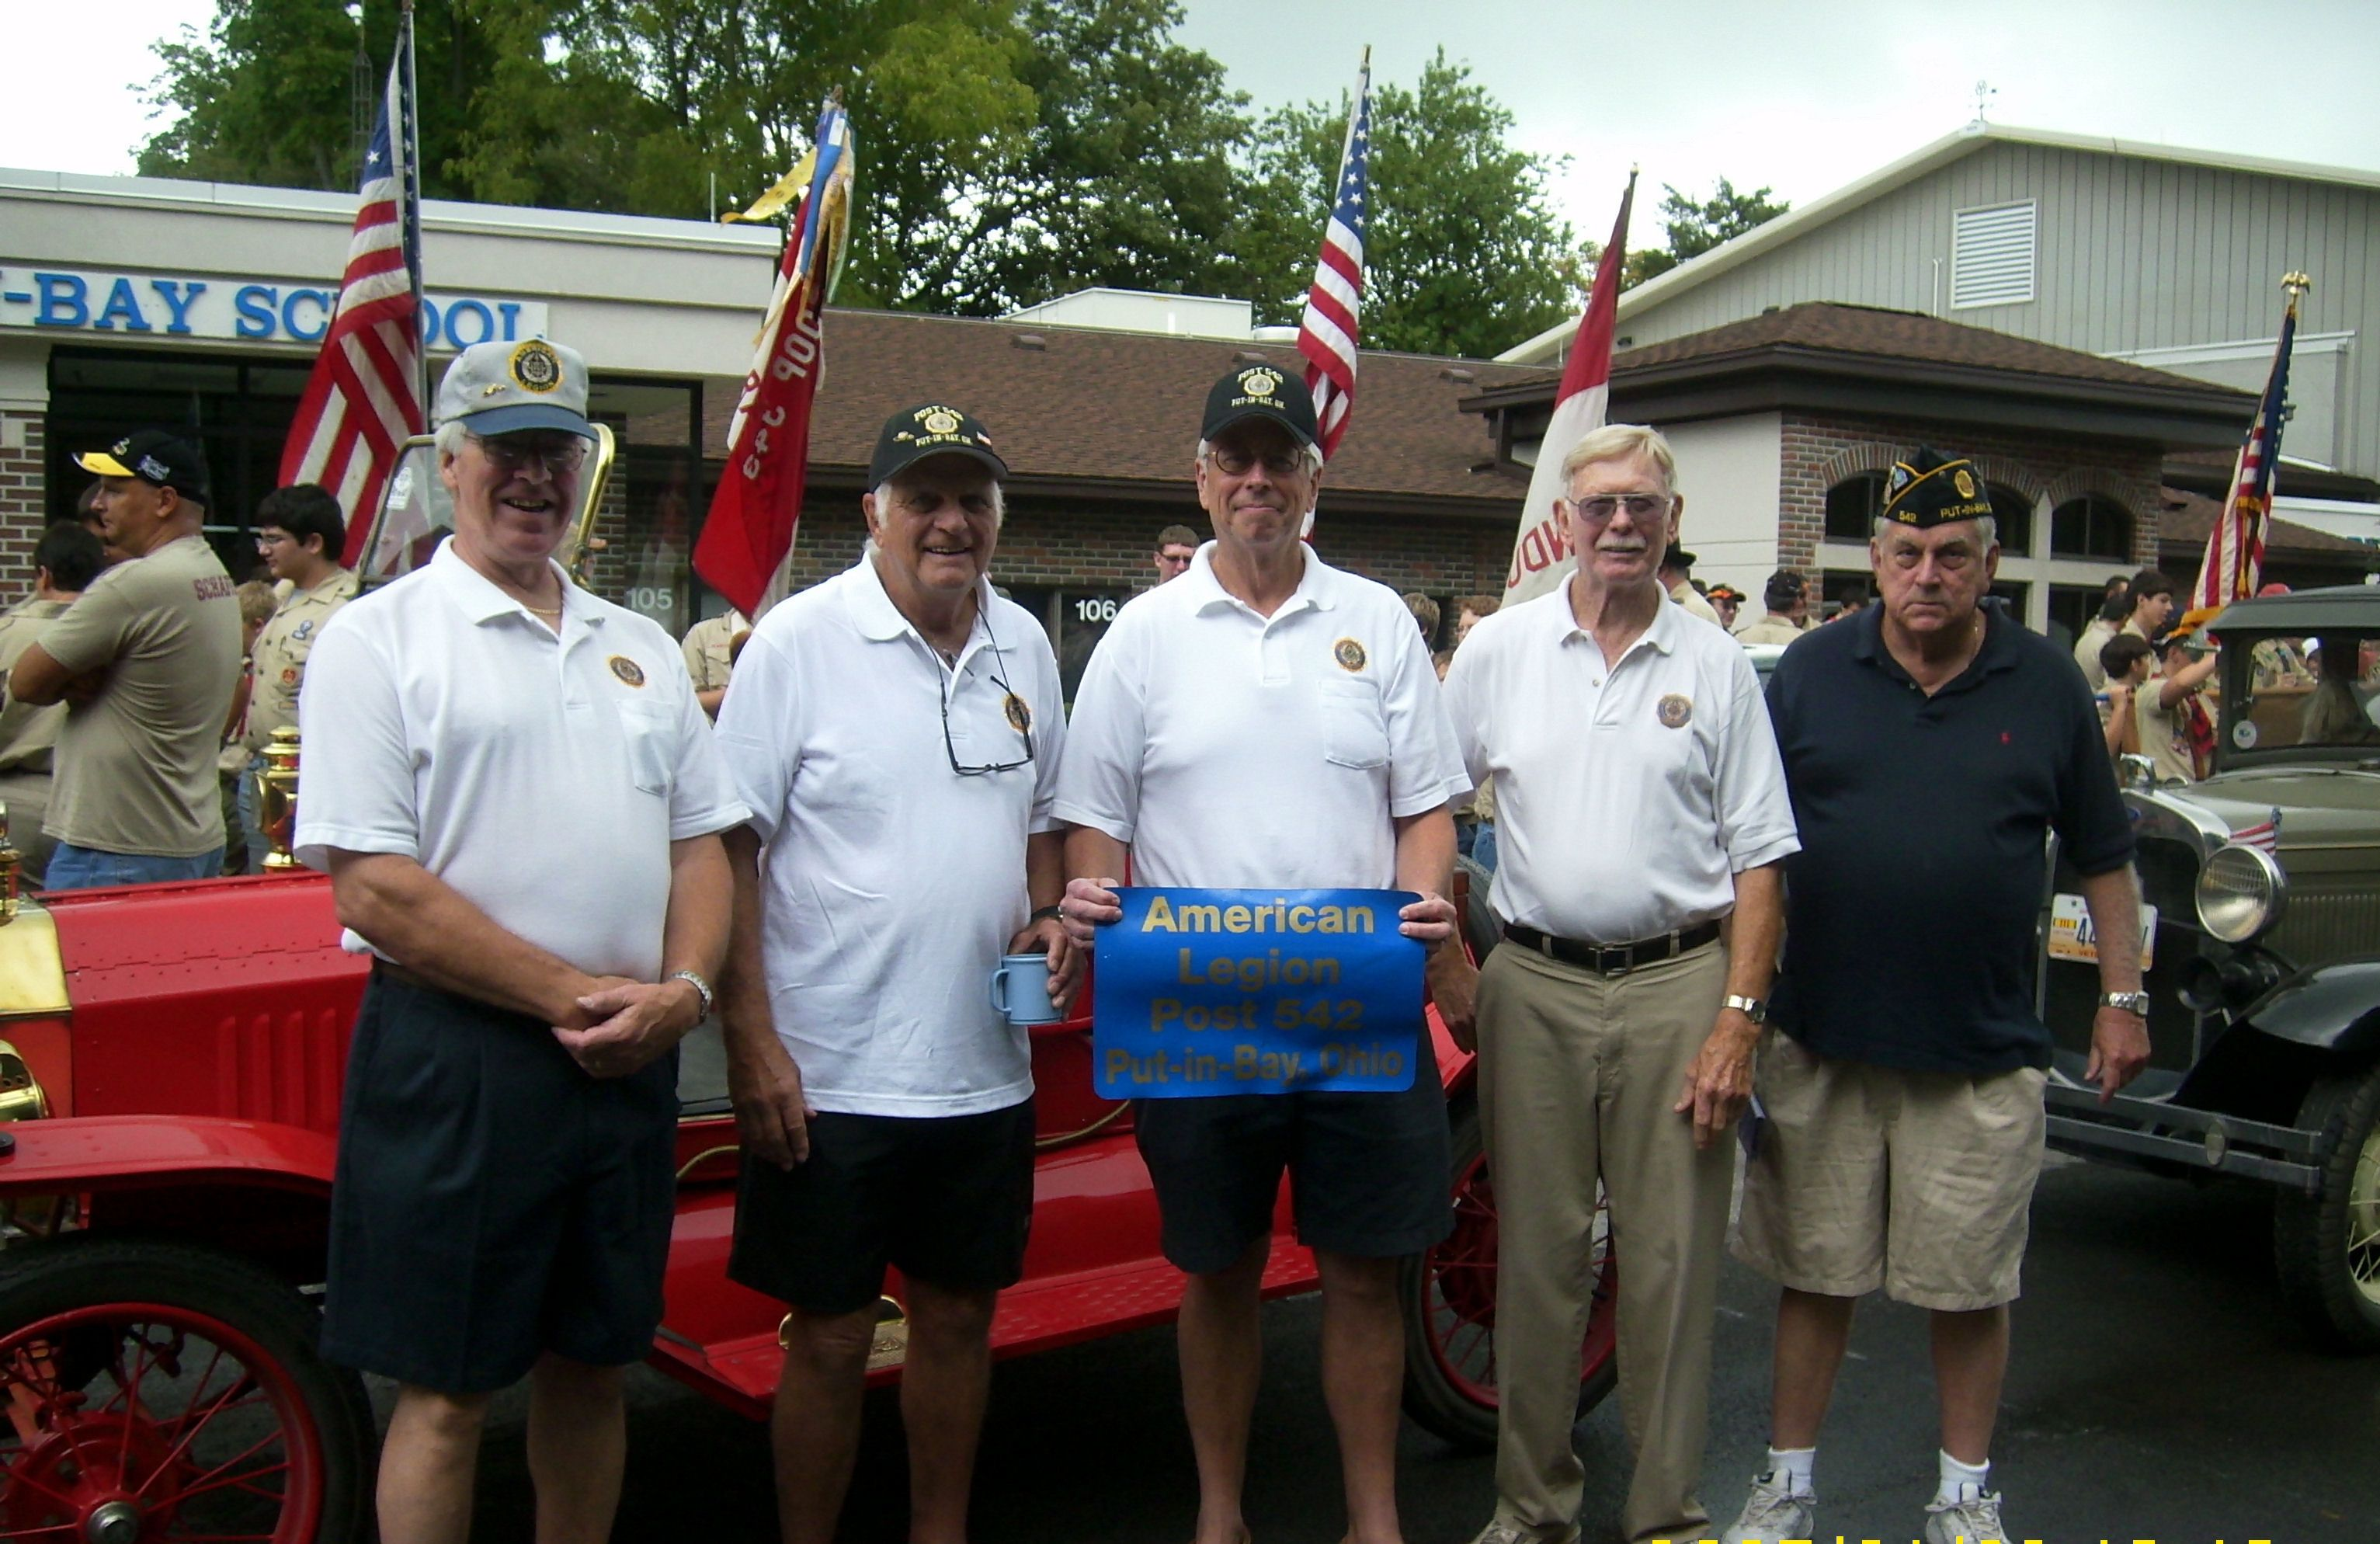 American Legion Post 542 Lining Up For The Grand Parade Through